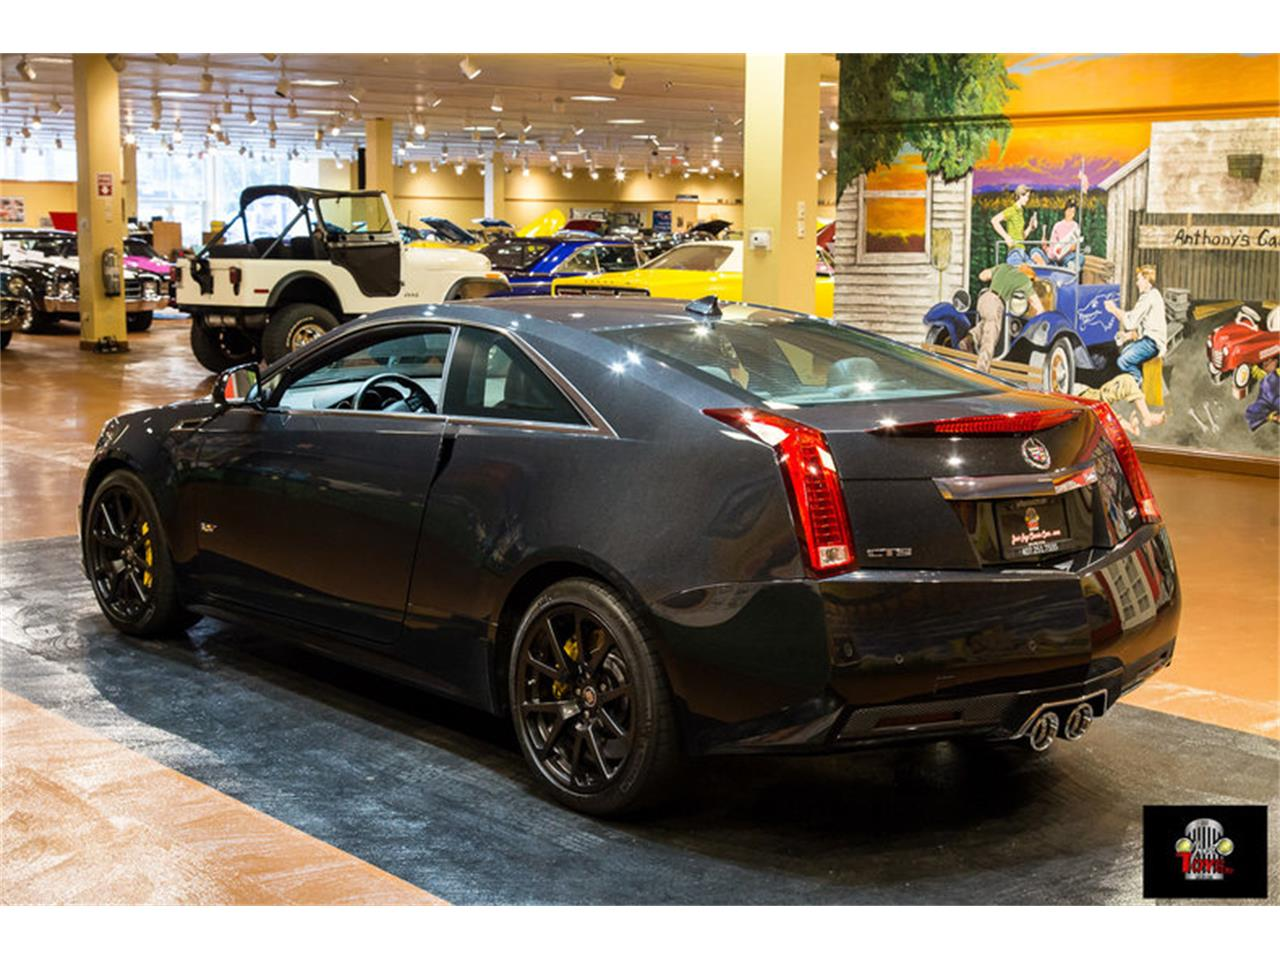 cts cadillac orlando florida classic cc classiccars financing inspection insurance transport